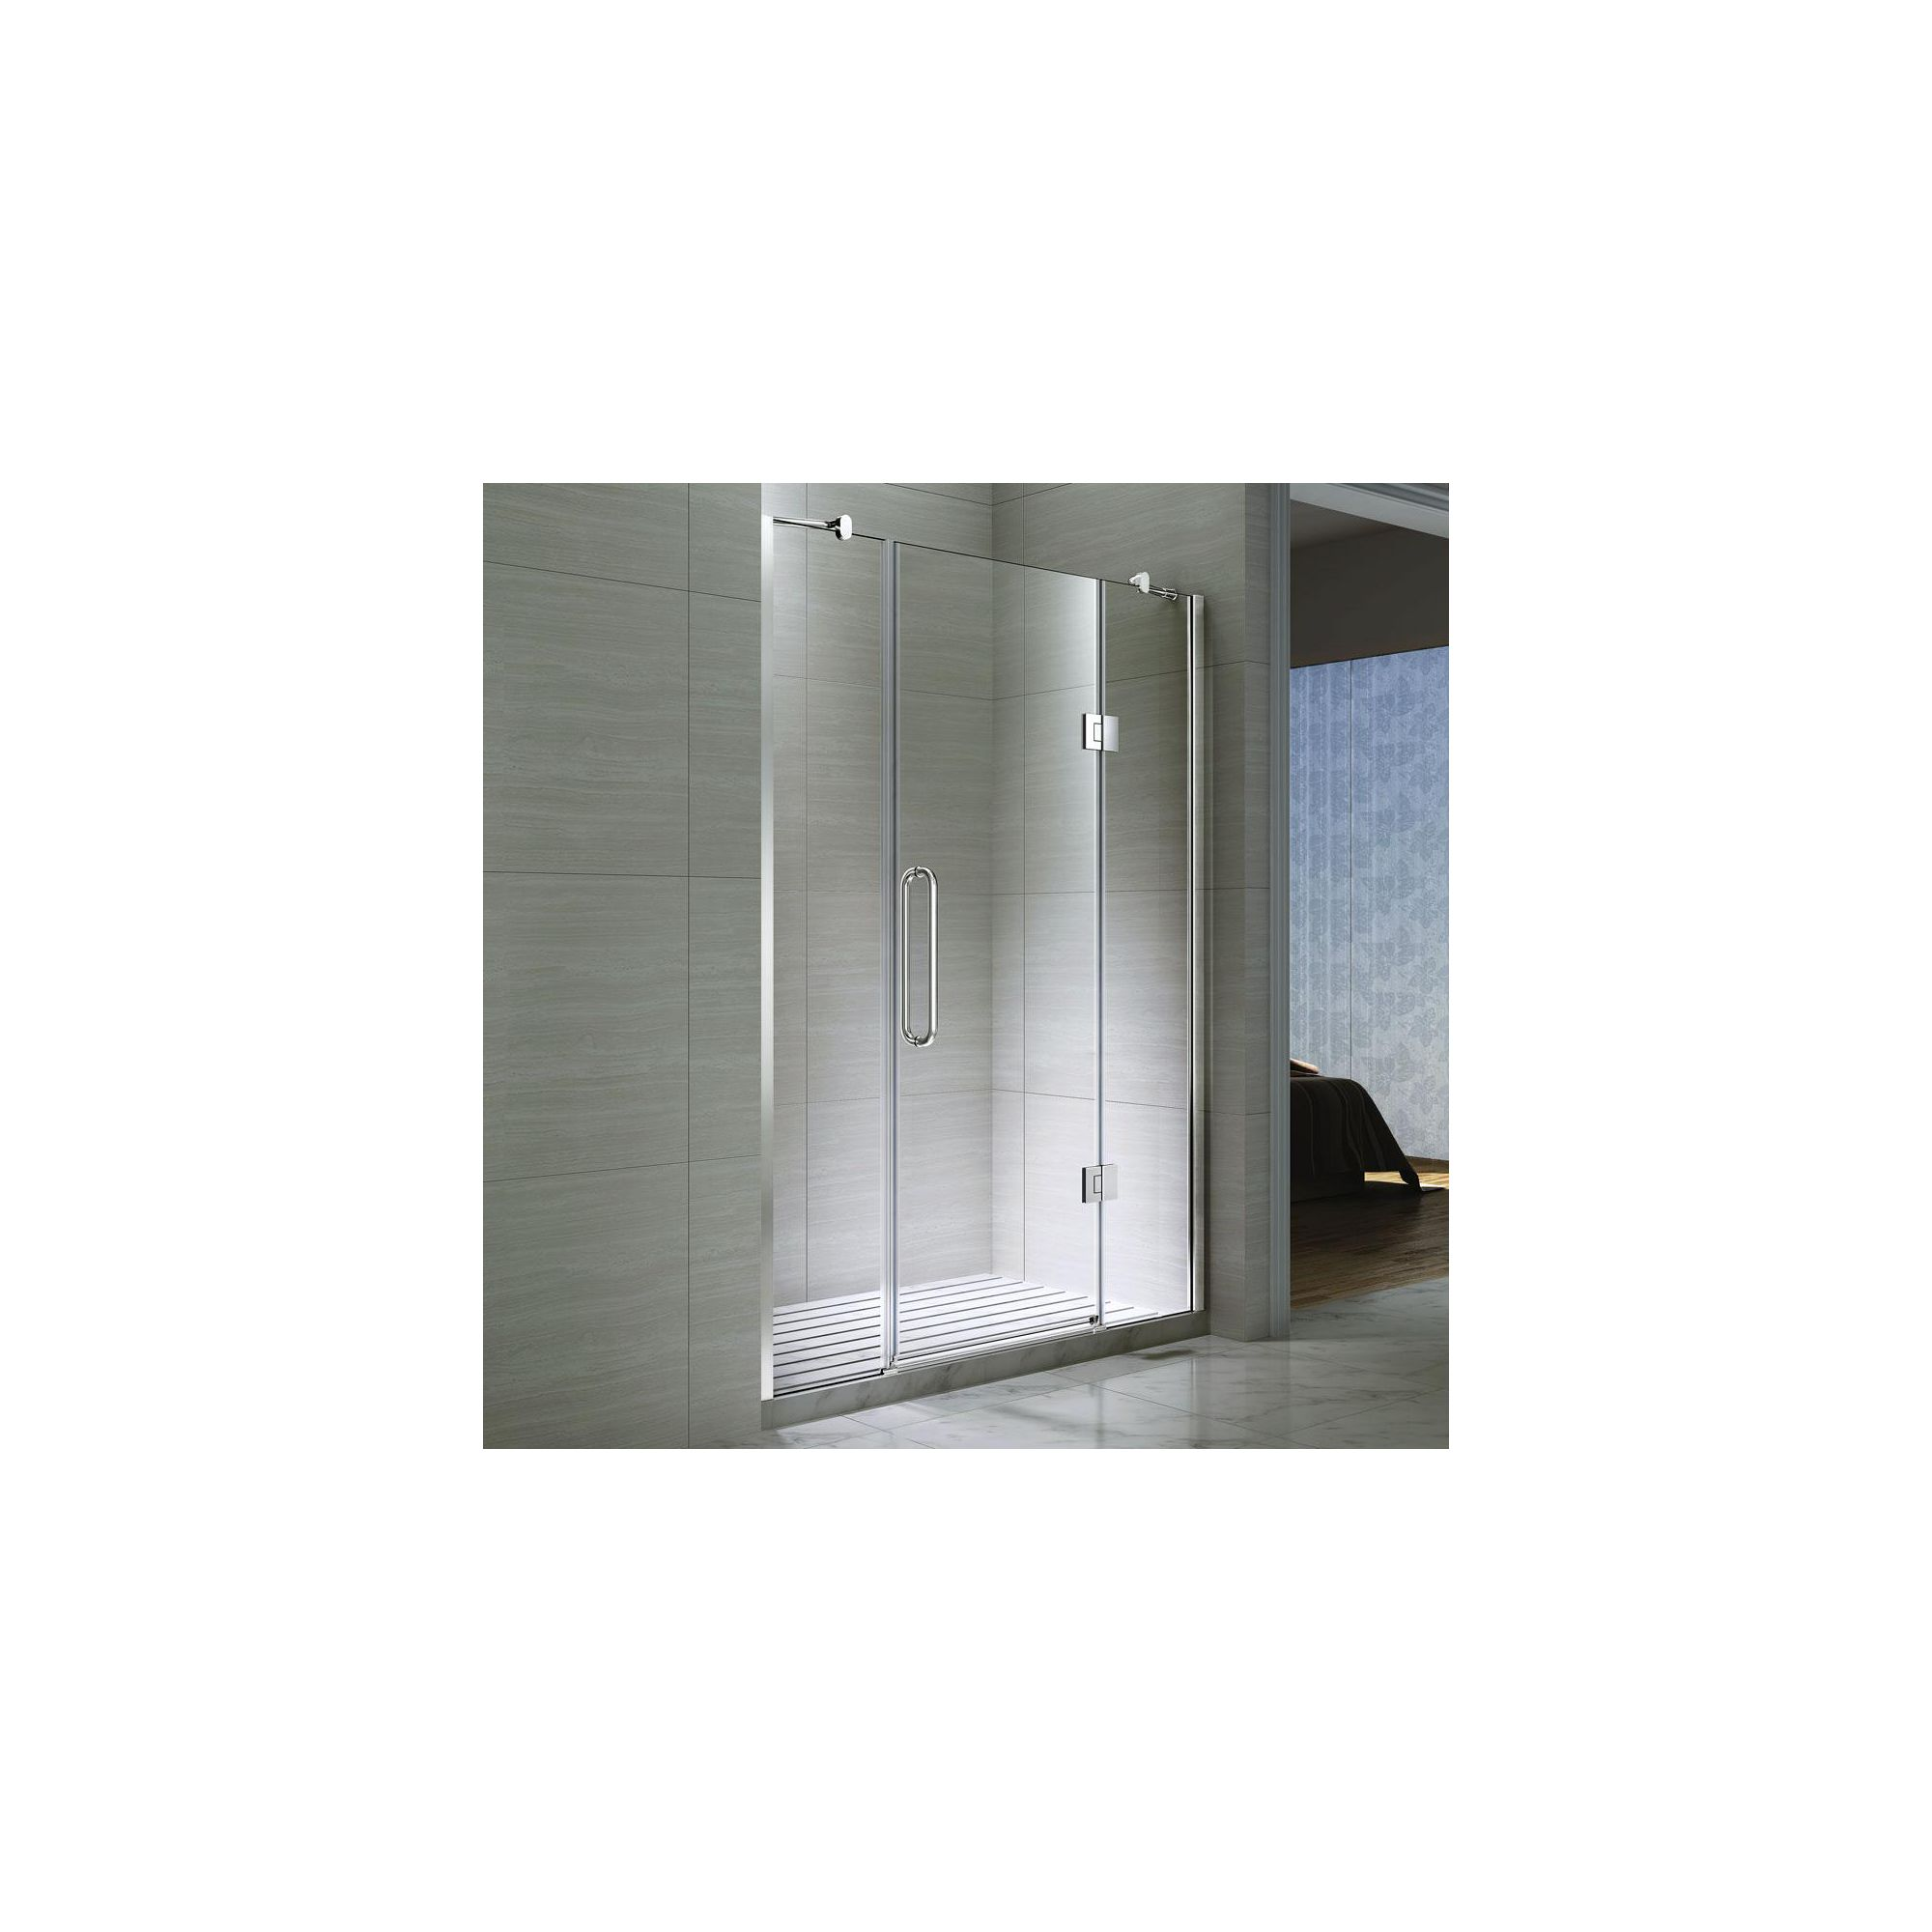 Desire Ten Double Inline Hinged Shower Door, 1400mm Wide, Semi-Frameless, 10mm Glass at Tesco Direct